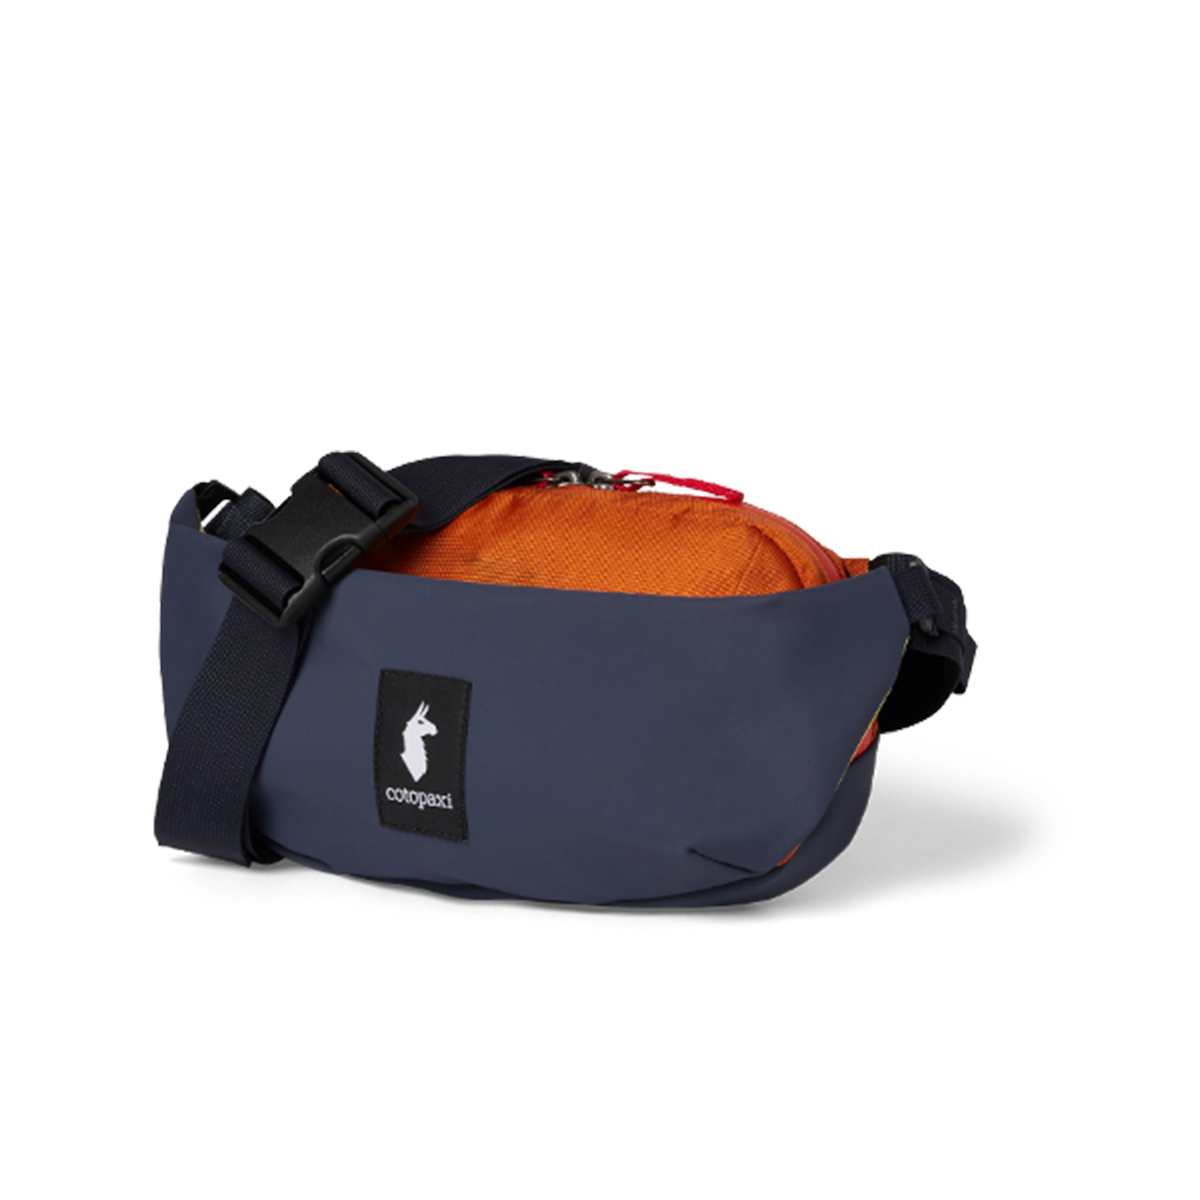 Coso 2L Hip Pack